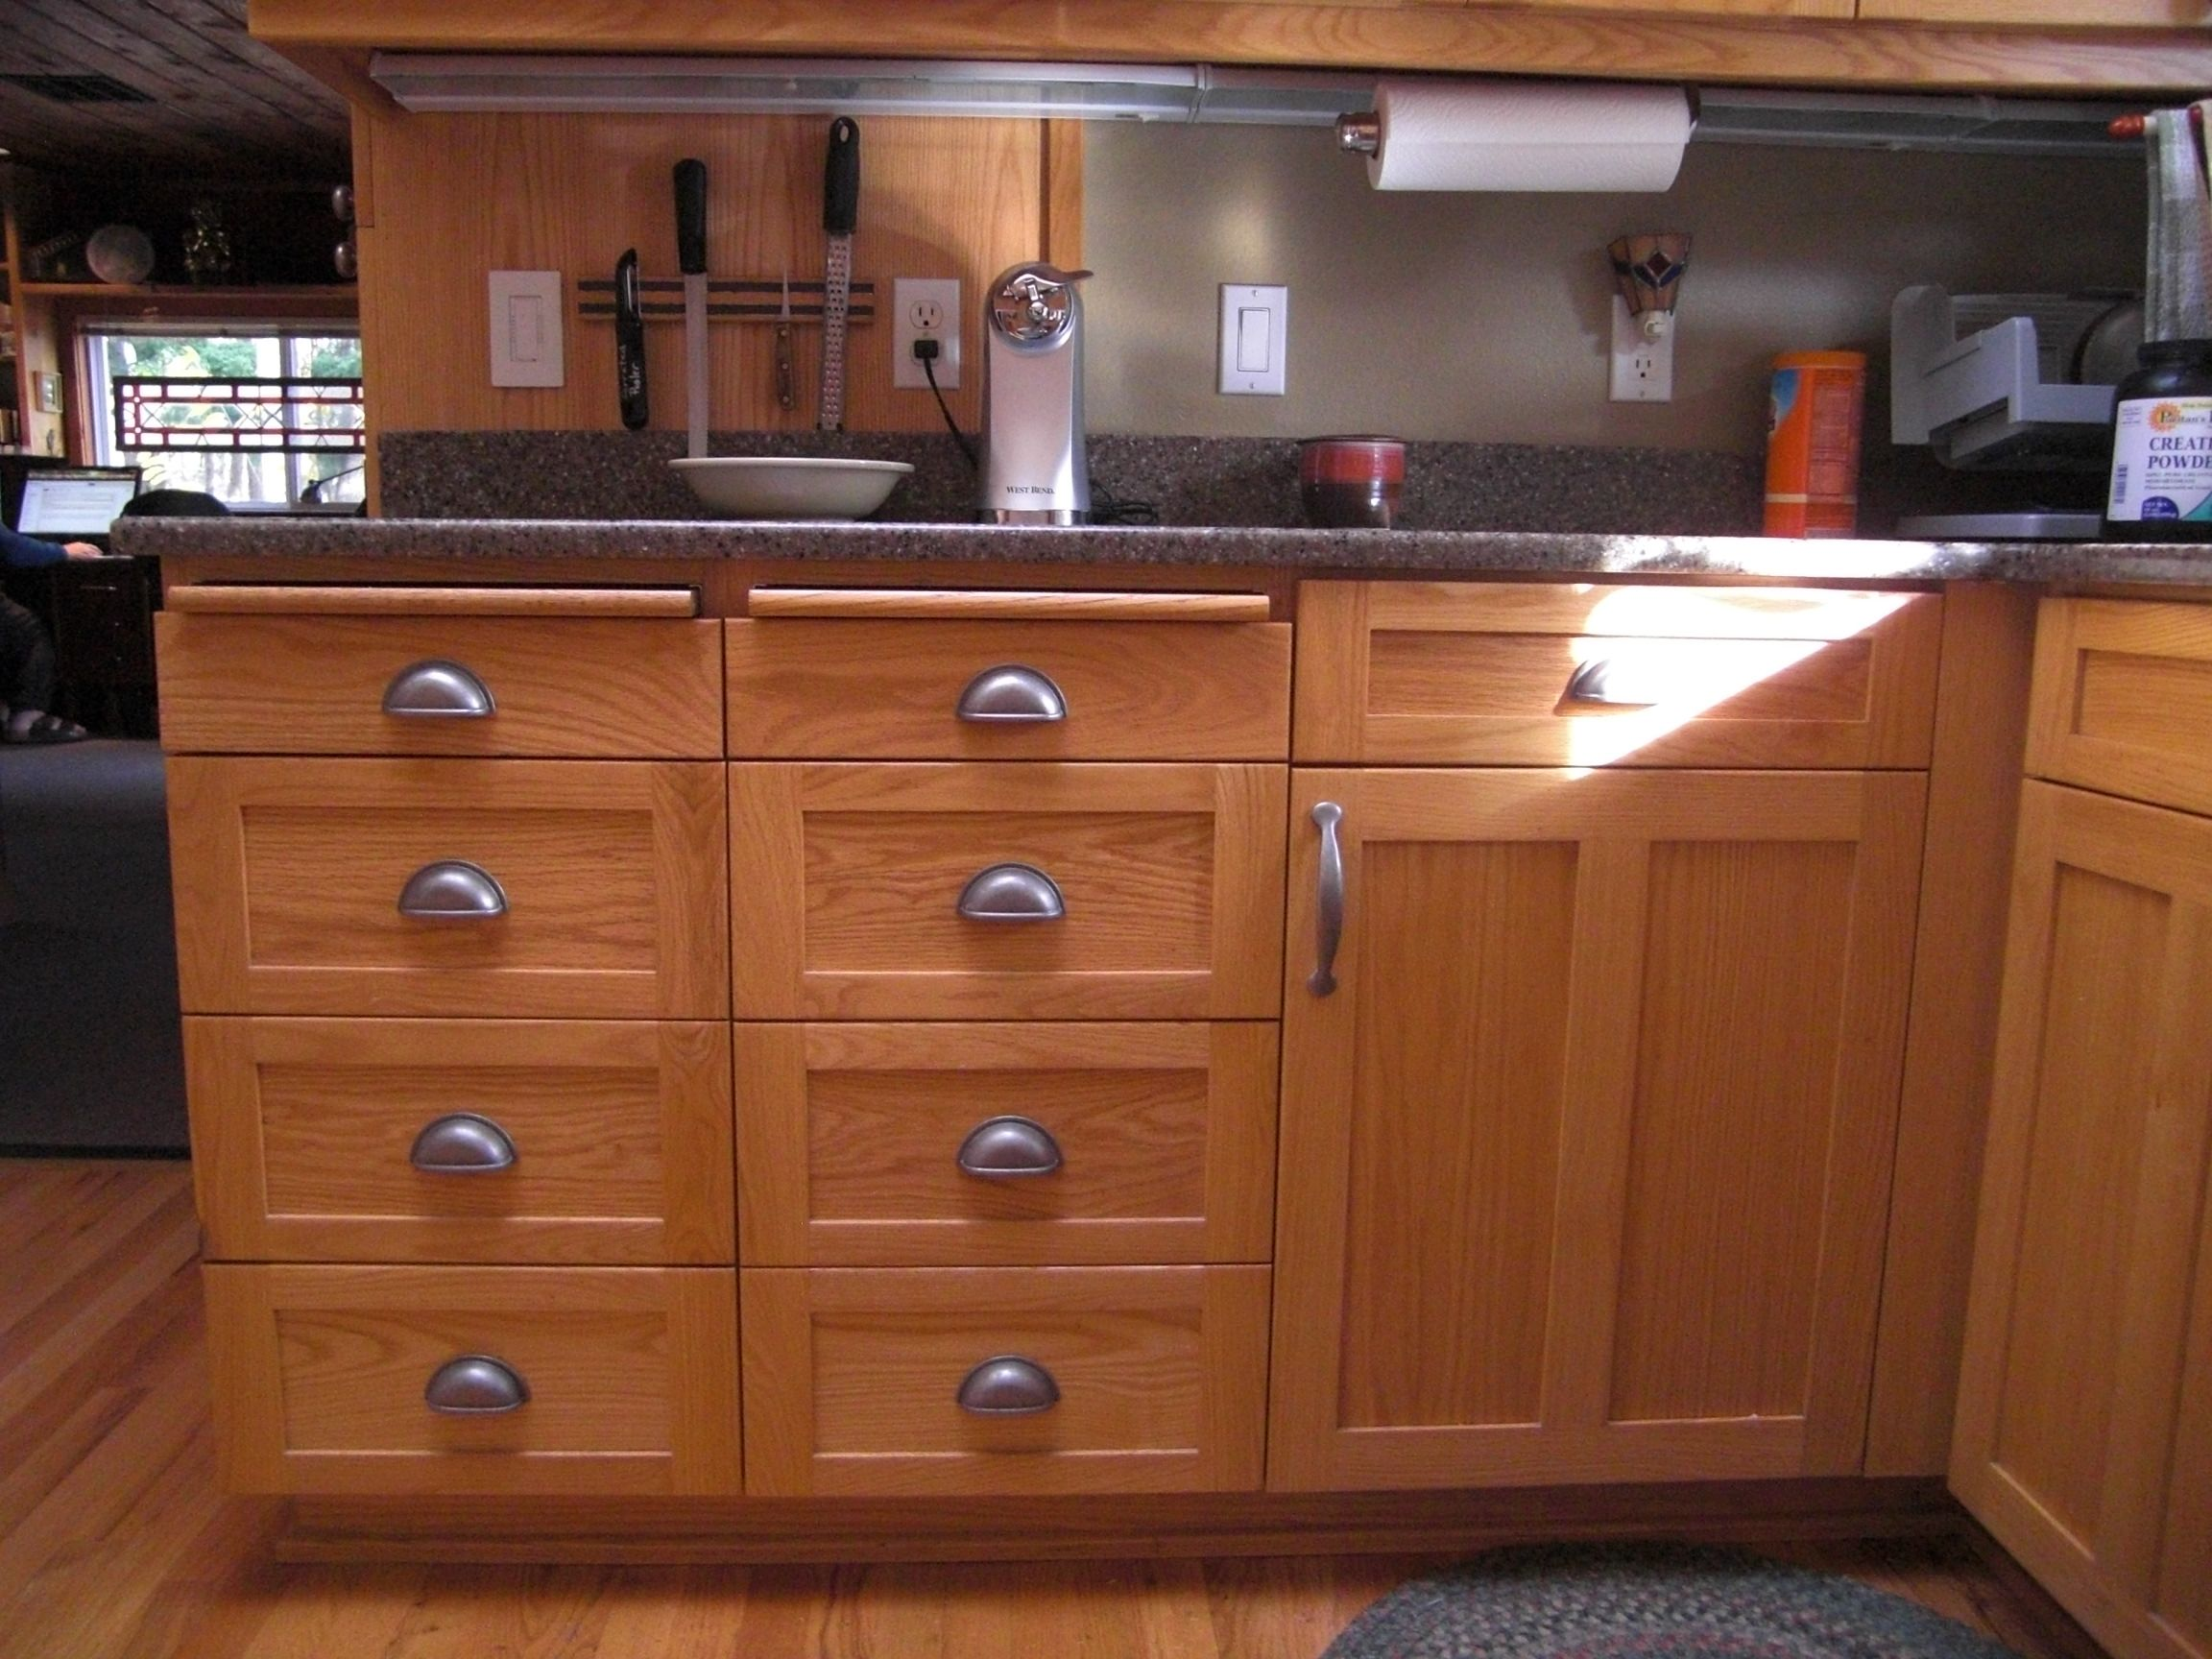 Hickory Shaker Style Kitchen Cabinets Round Sink Love The Cup Pulls Ideas For Elliott Pinterest